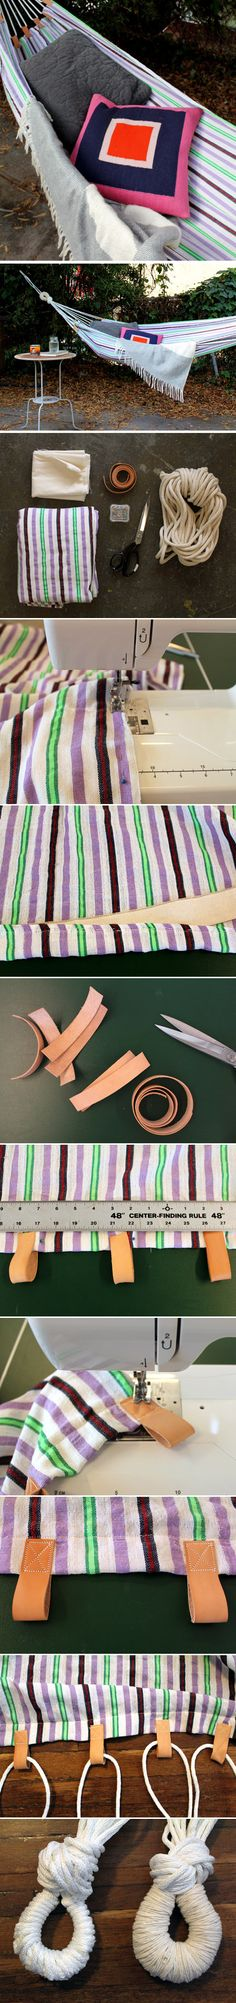 DIY: Make a hammock